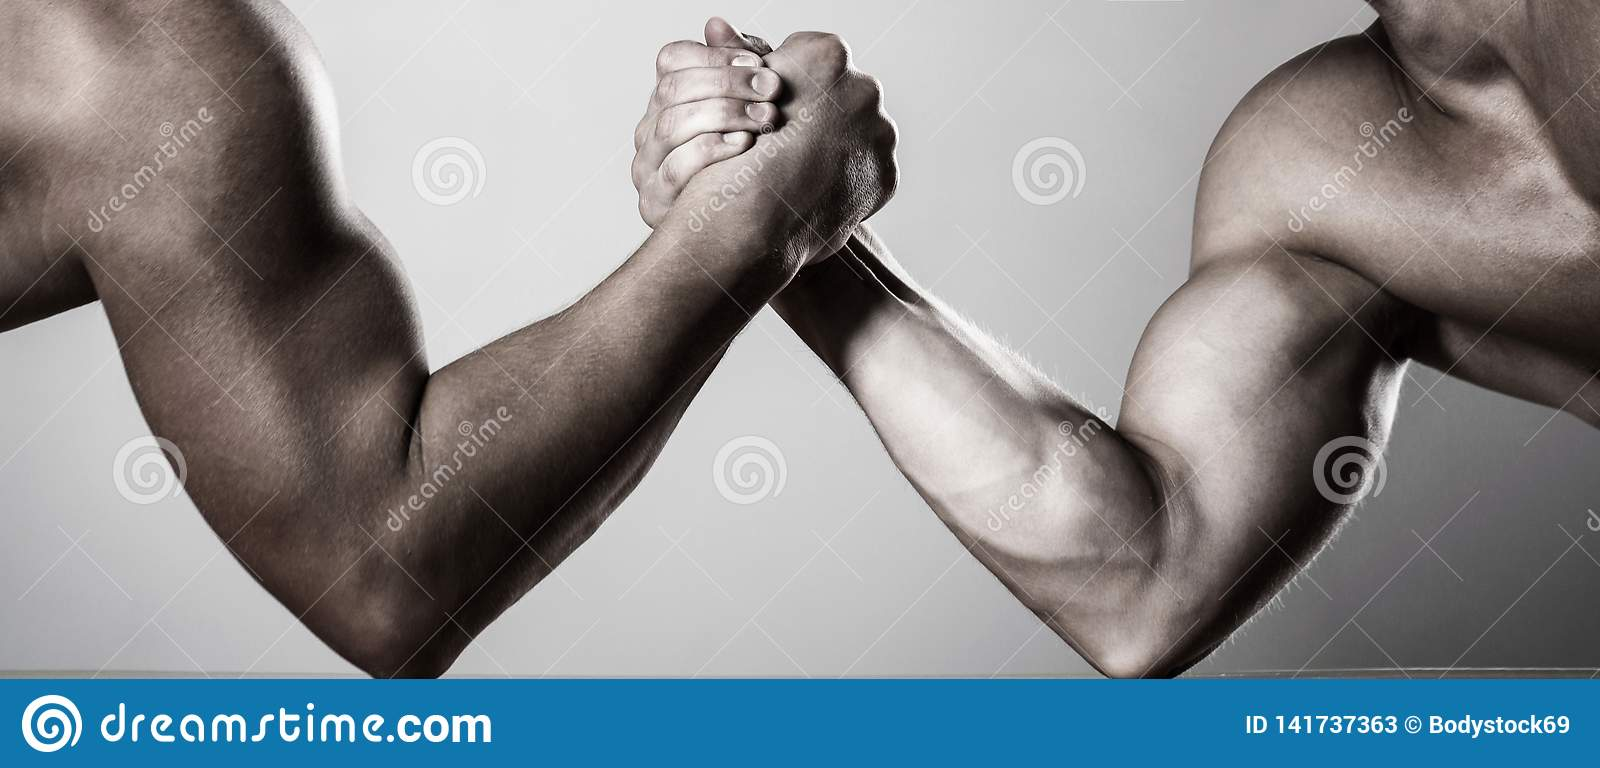 Two men arm wrestling. Rivalry, closeup of male arm wrestling. Two hands. Men measuring forces, arms. Hand wrestling